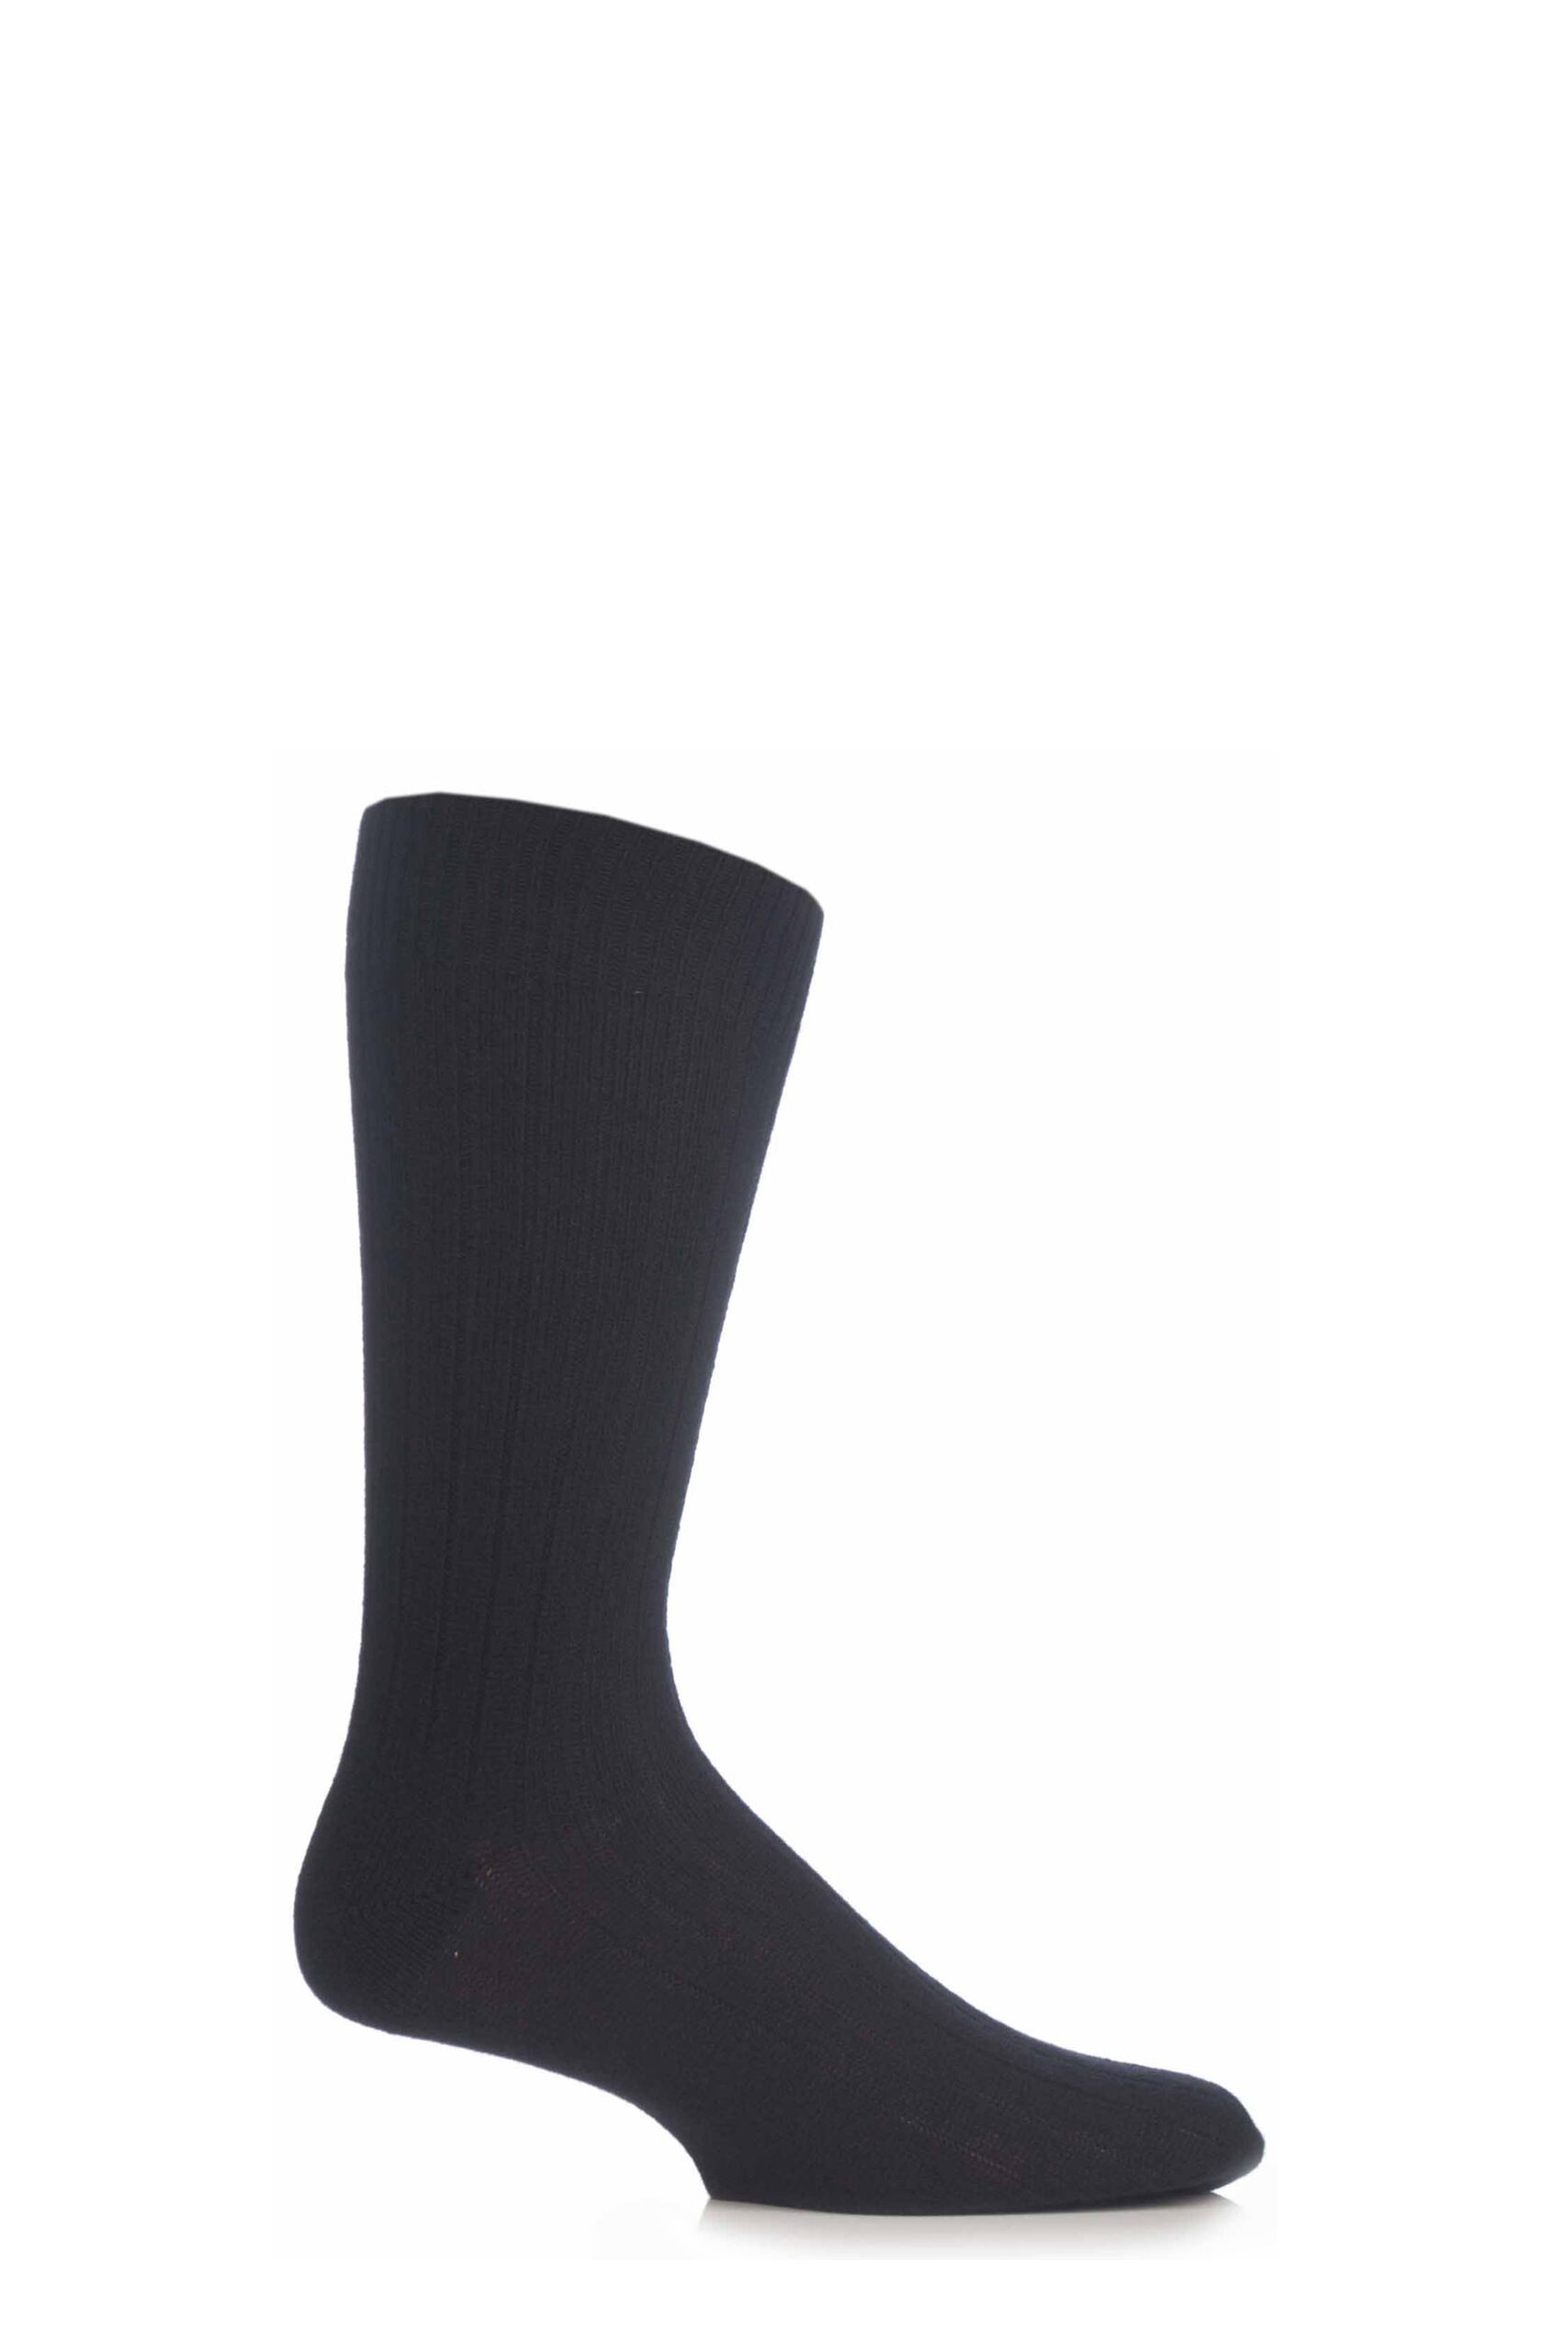 Image of 1 Pair Black 85% Cashmere Rib Socks Men's 7.5-9.5 Mens - Pantherella